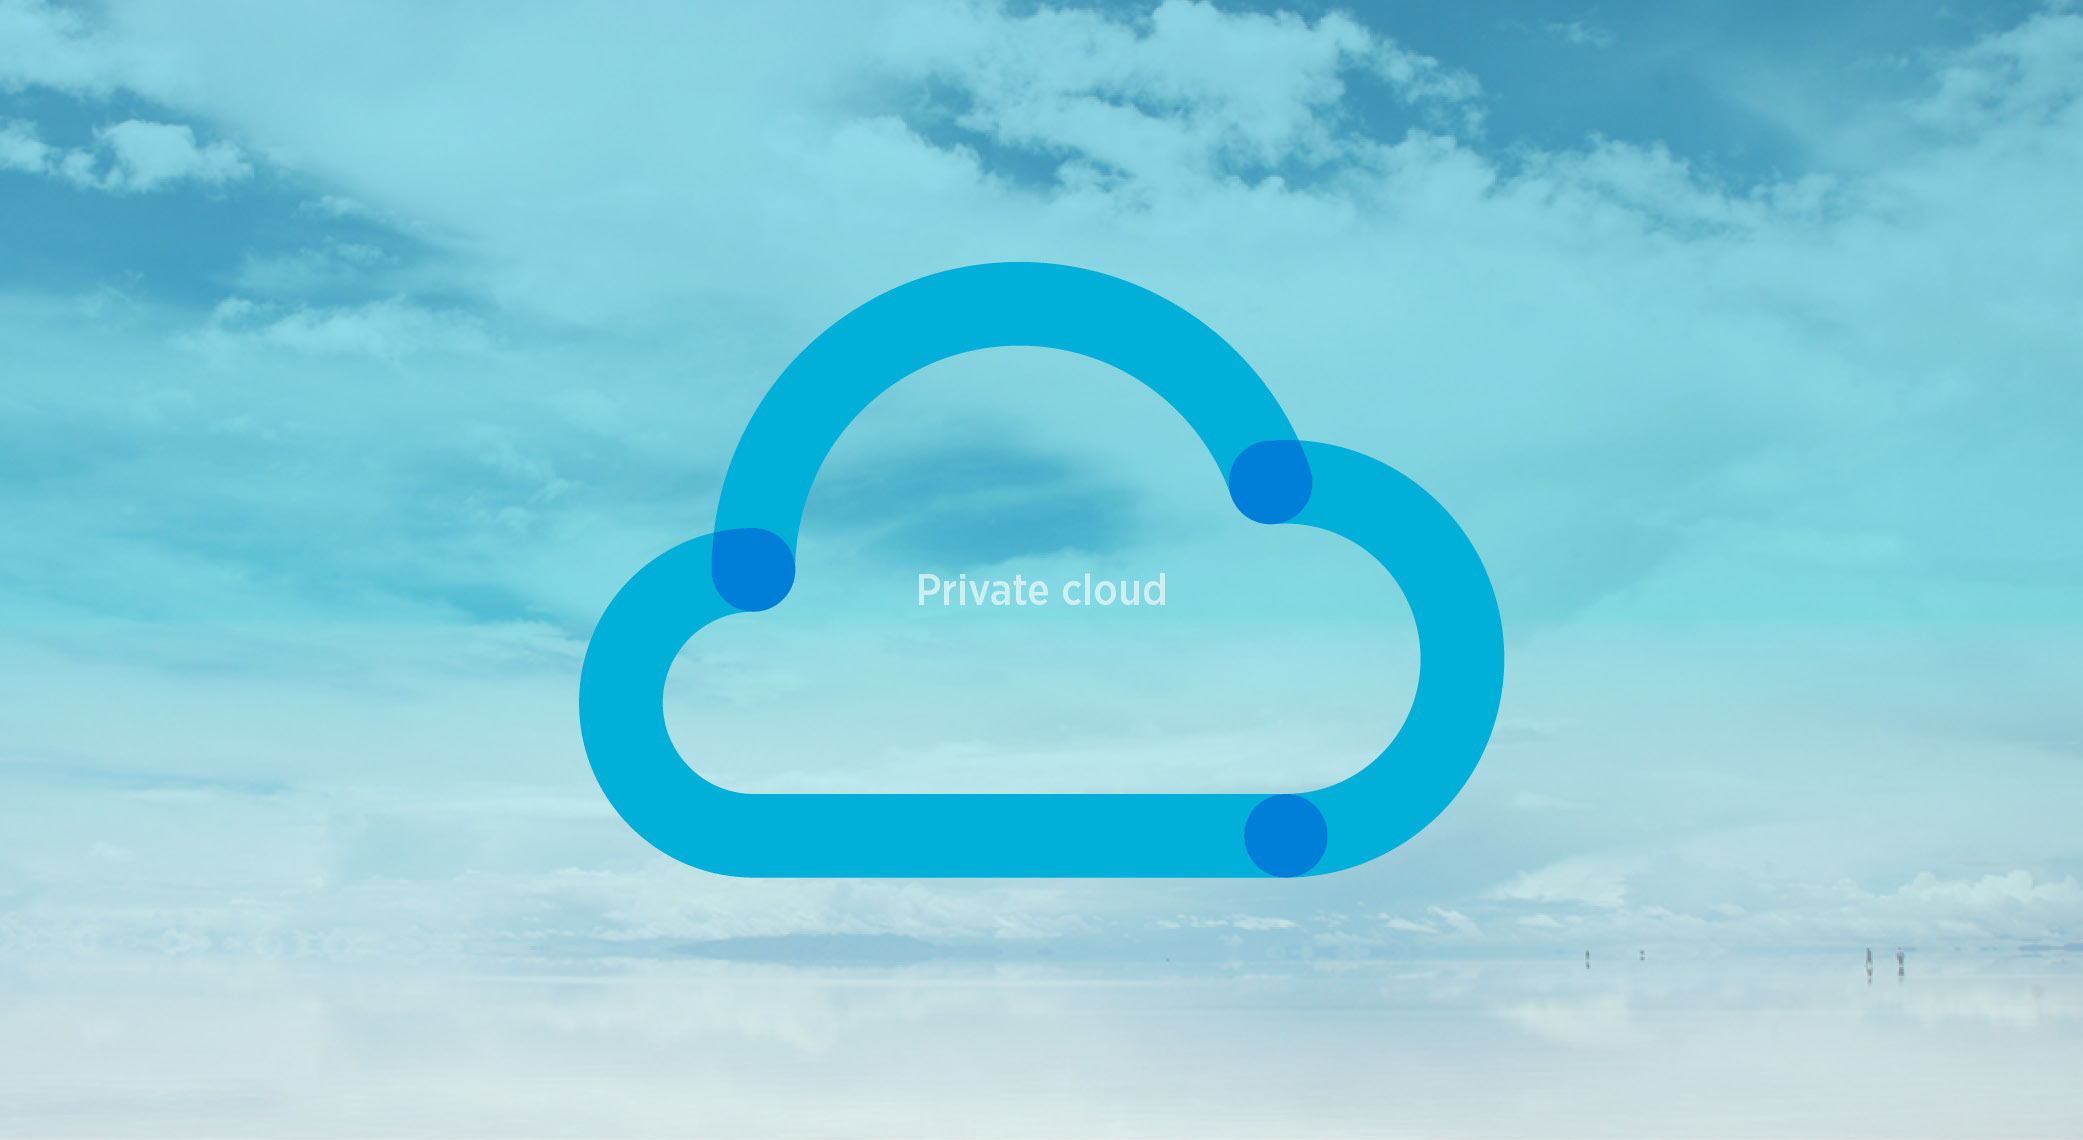 Kind of cloud-Private cloud